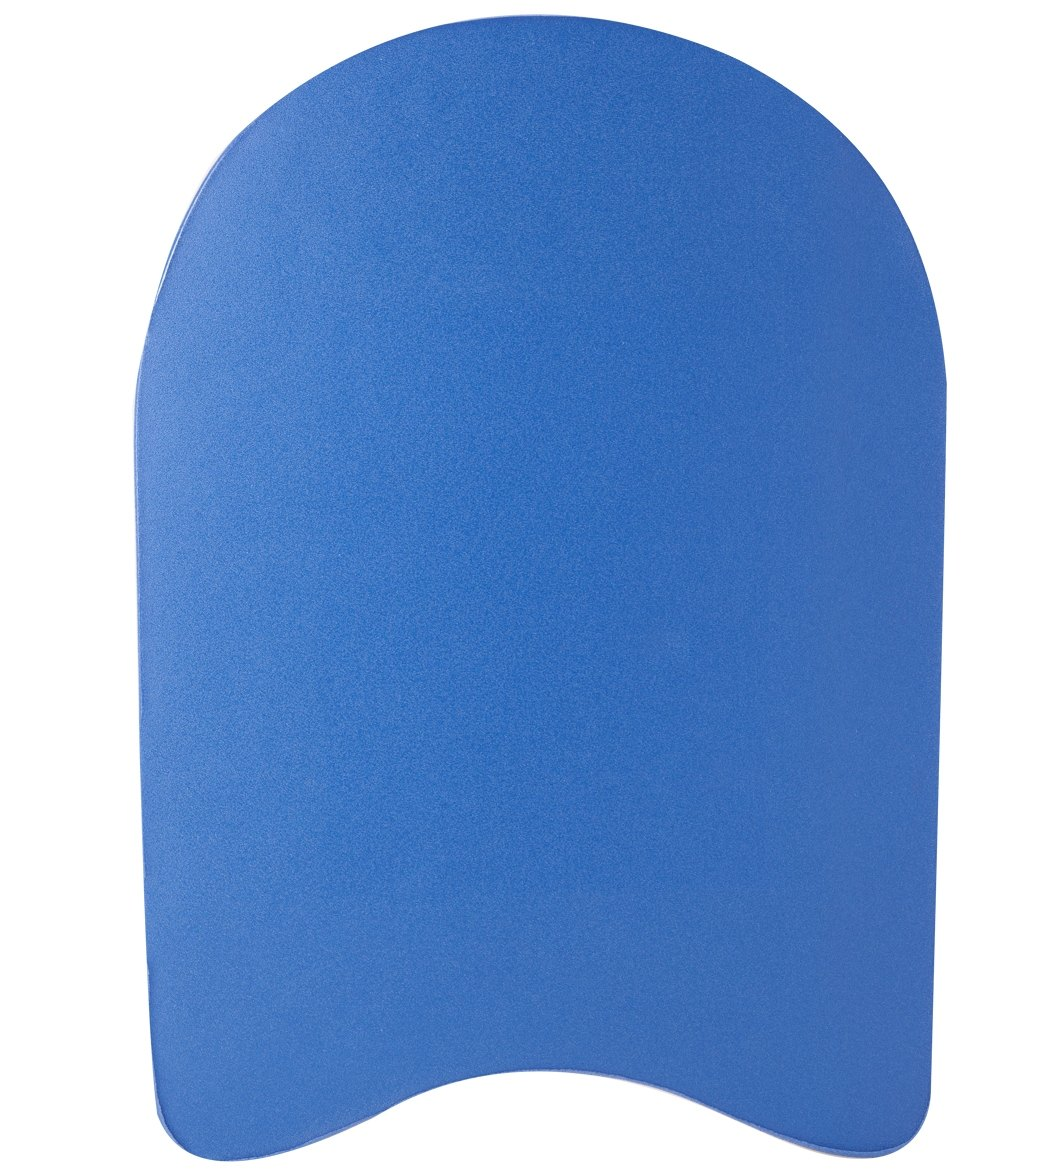 wet products mongo kickboard at swimoutlet com